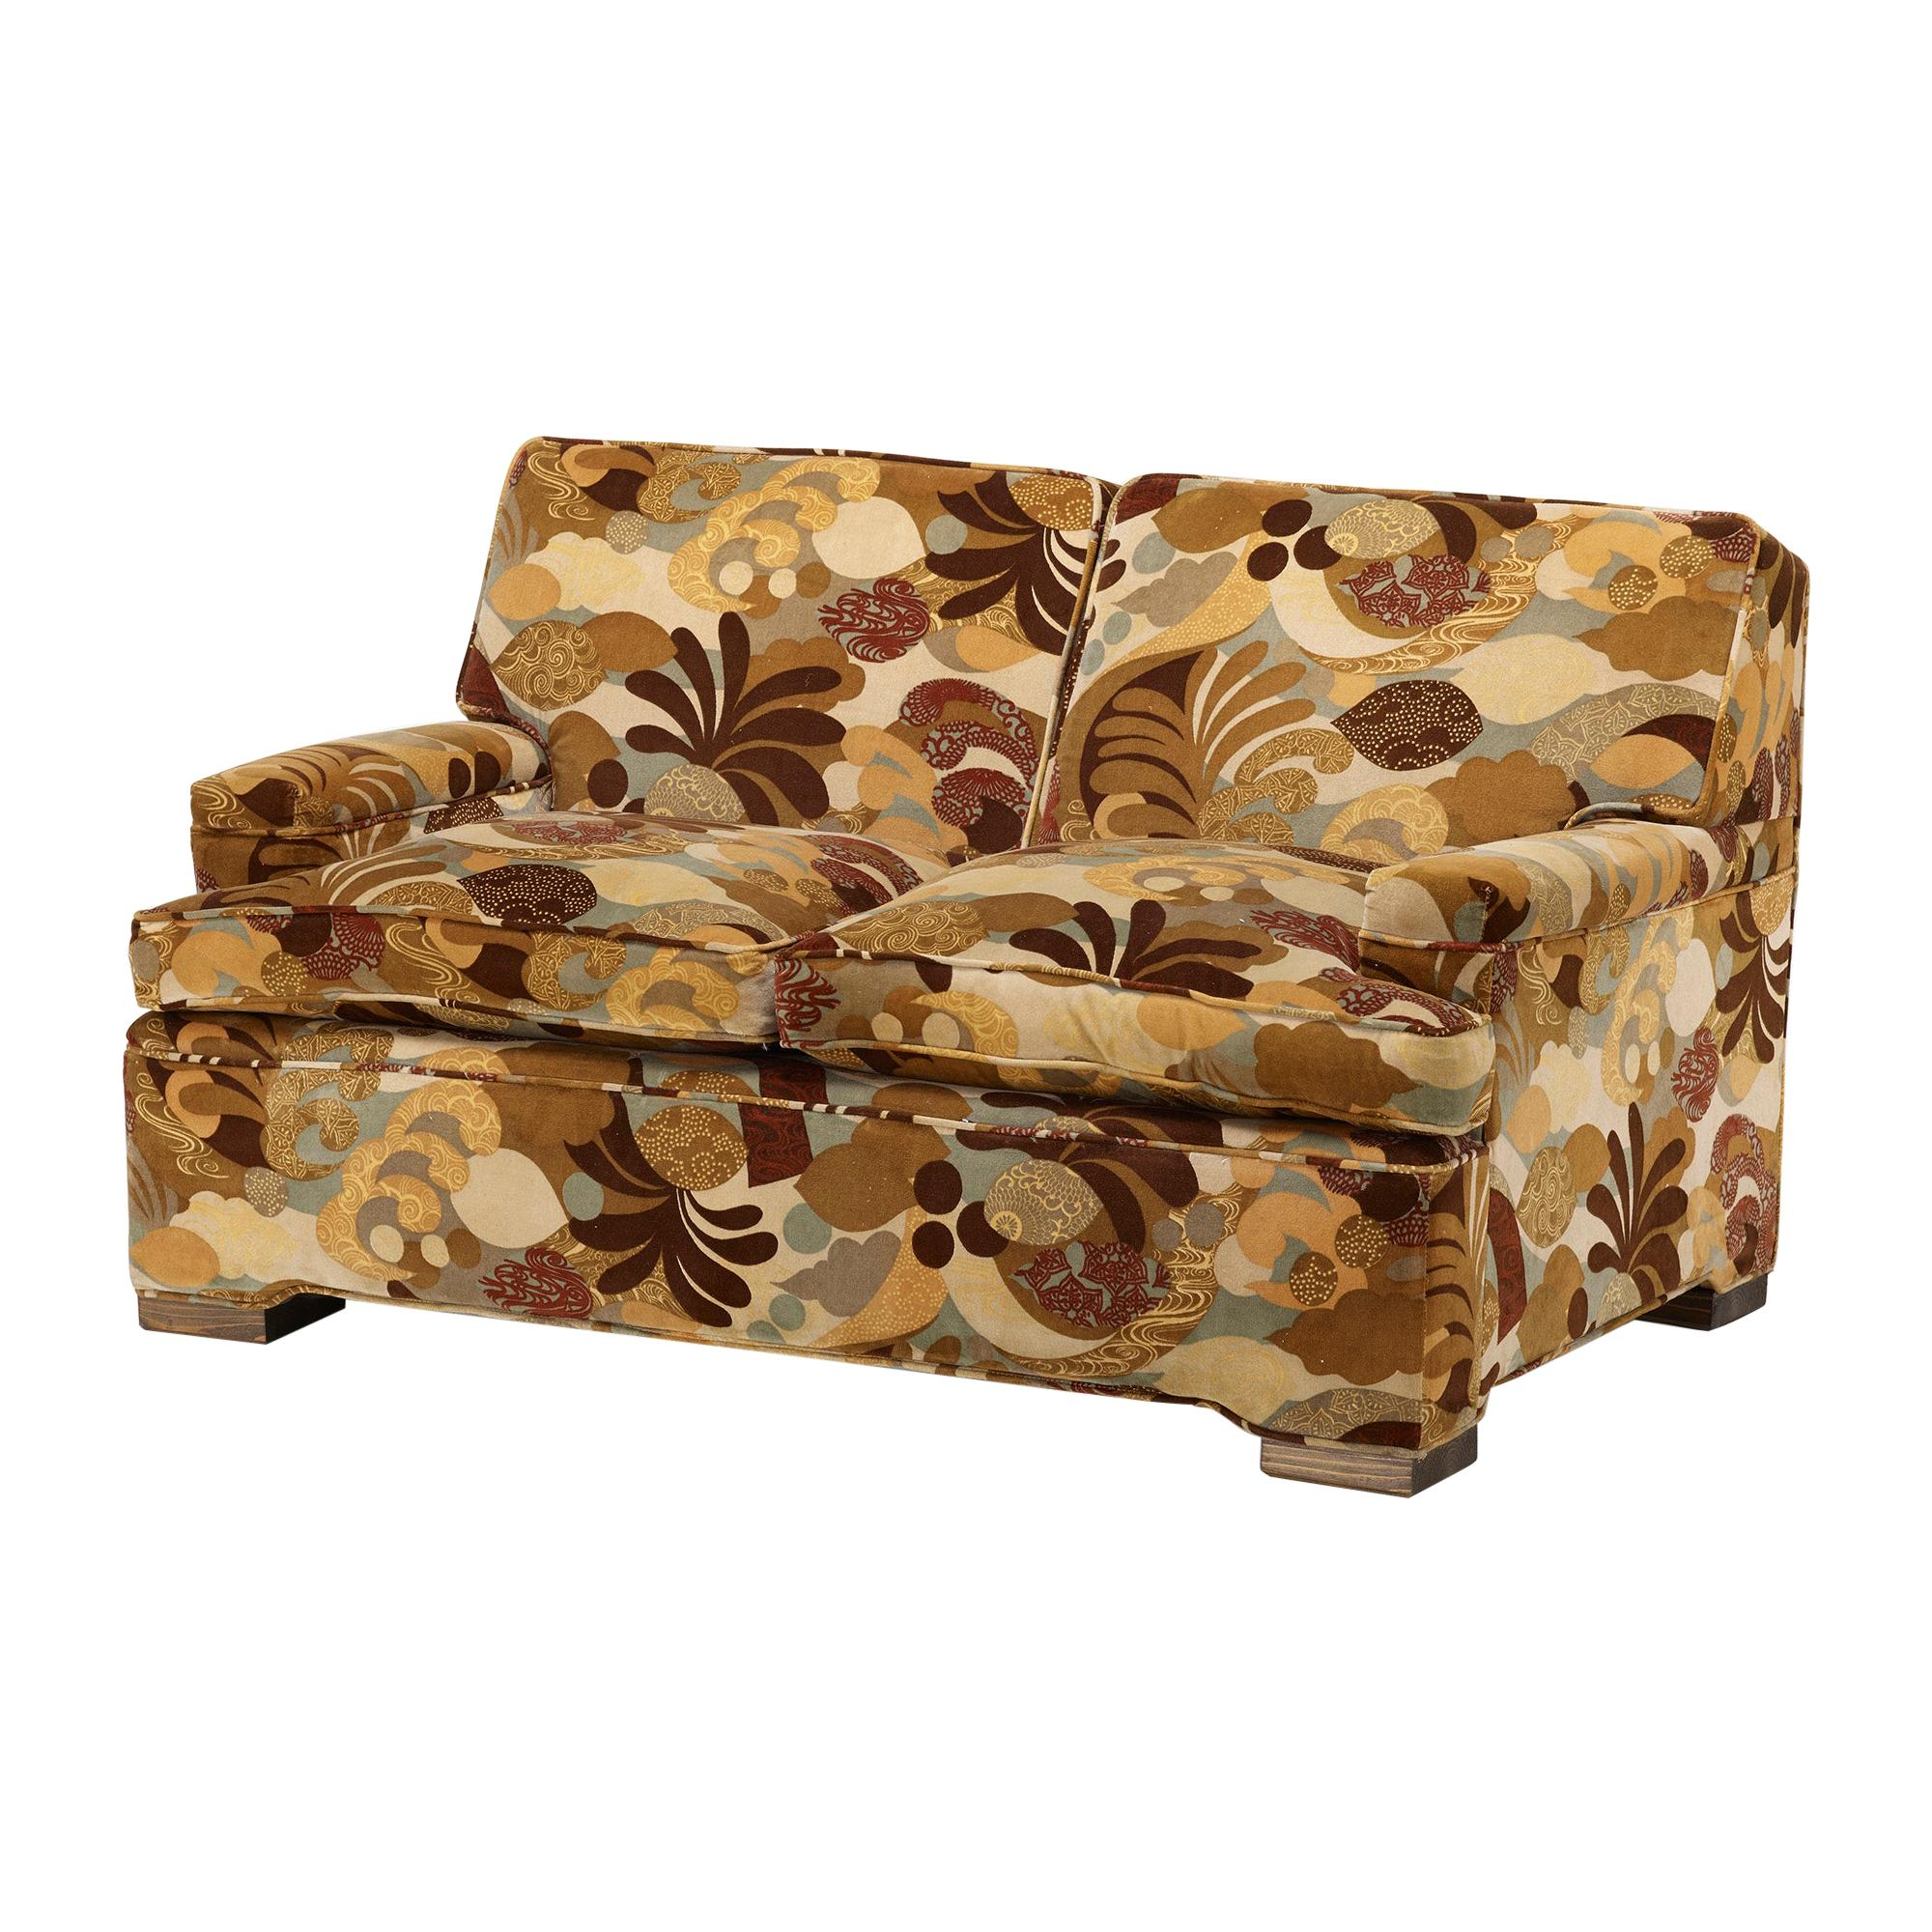 Two-Seat Sofa in the Manner of Jean-Michel Frank